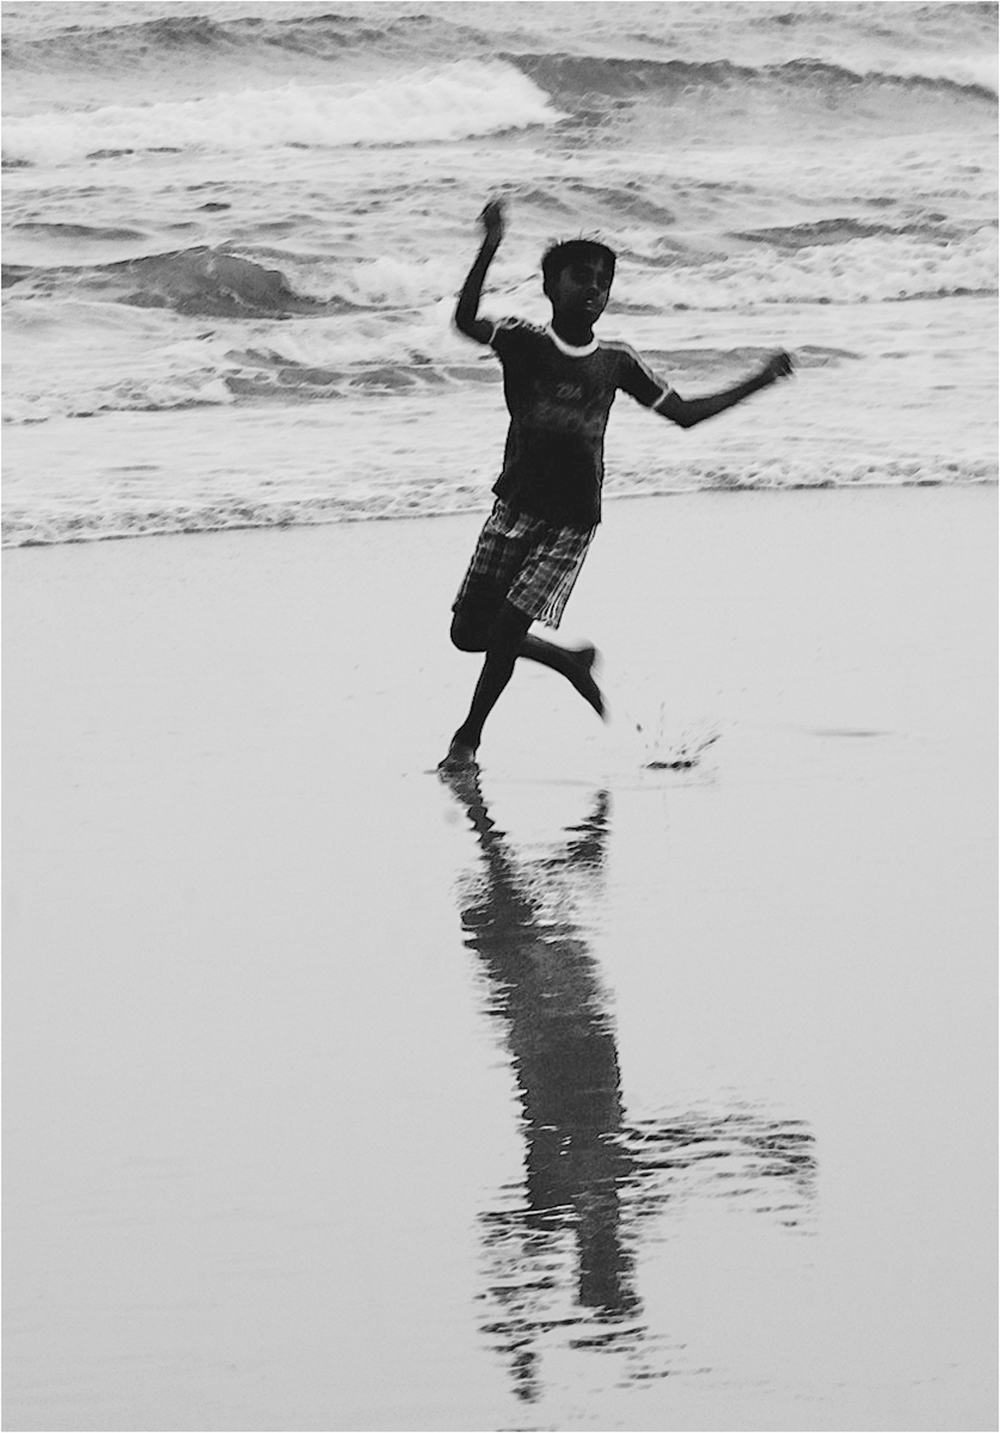 Running on the Beach, India